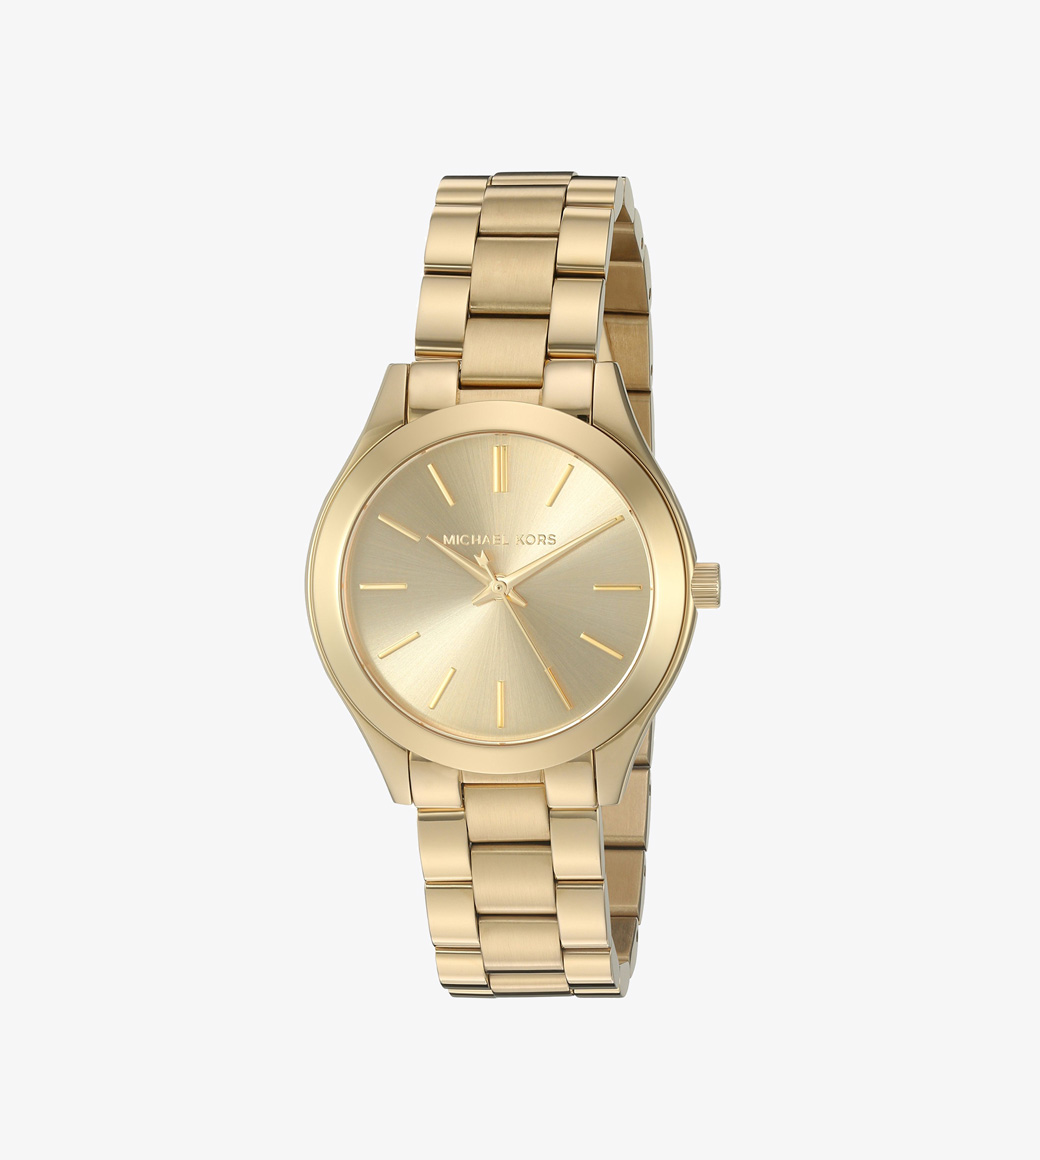 Women's Watches | Amazon.com